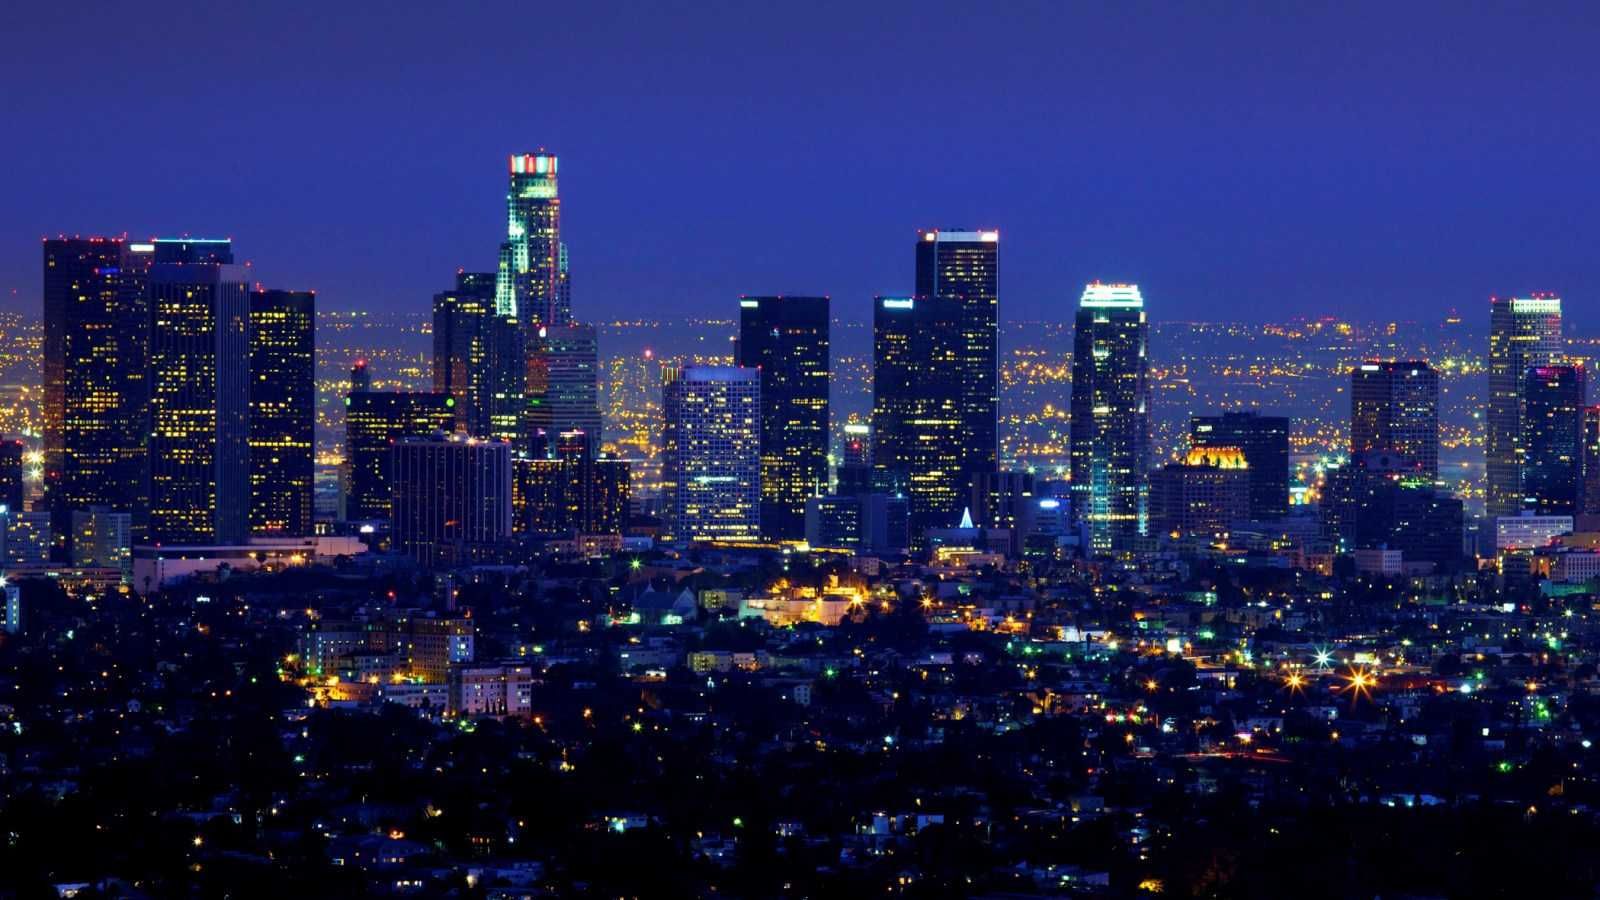 Holiday Party Venue - Los Angeles Night Skyline